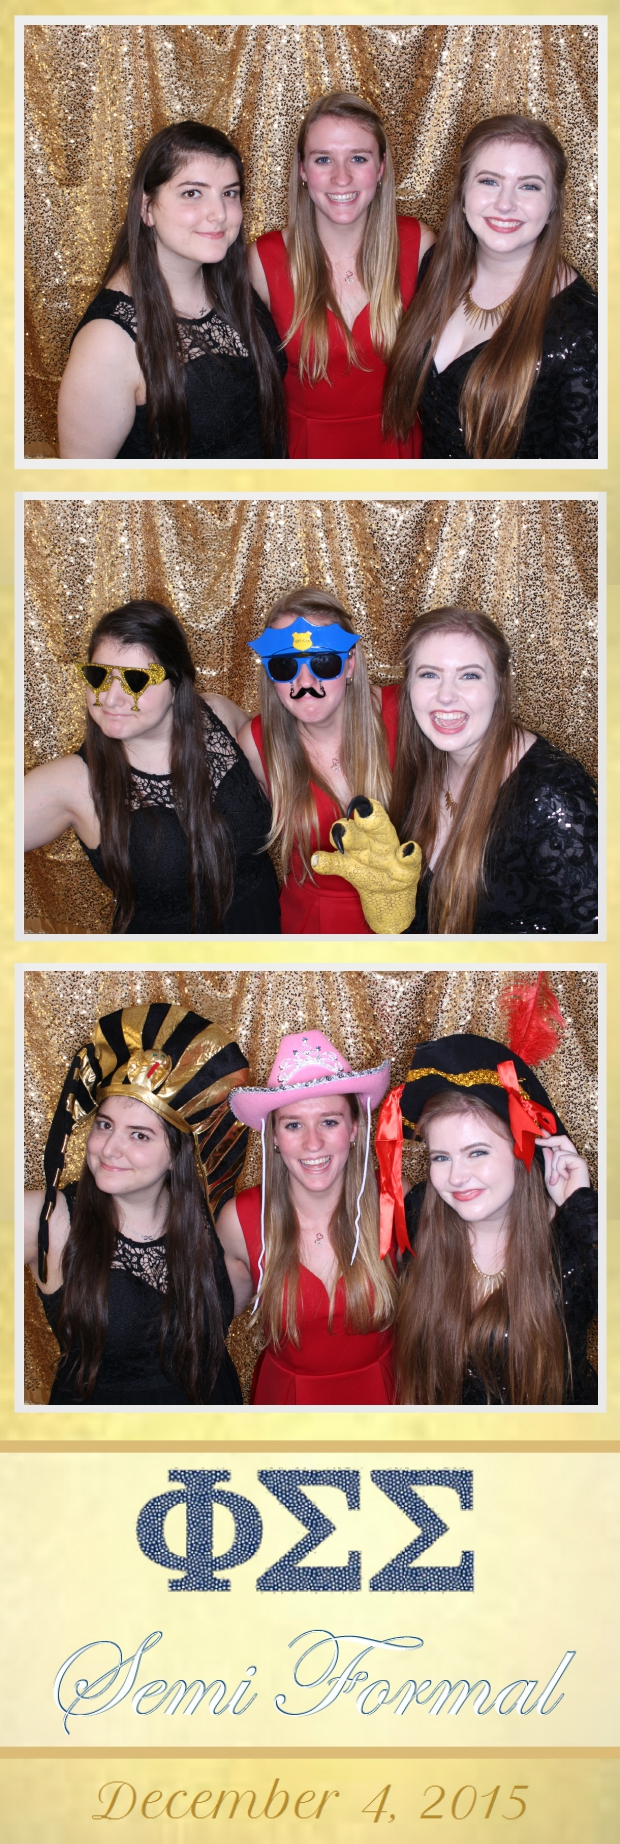 Guest House Events Photo Booth Phi Sigma Sigma Semi Formal (46).jpg